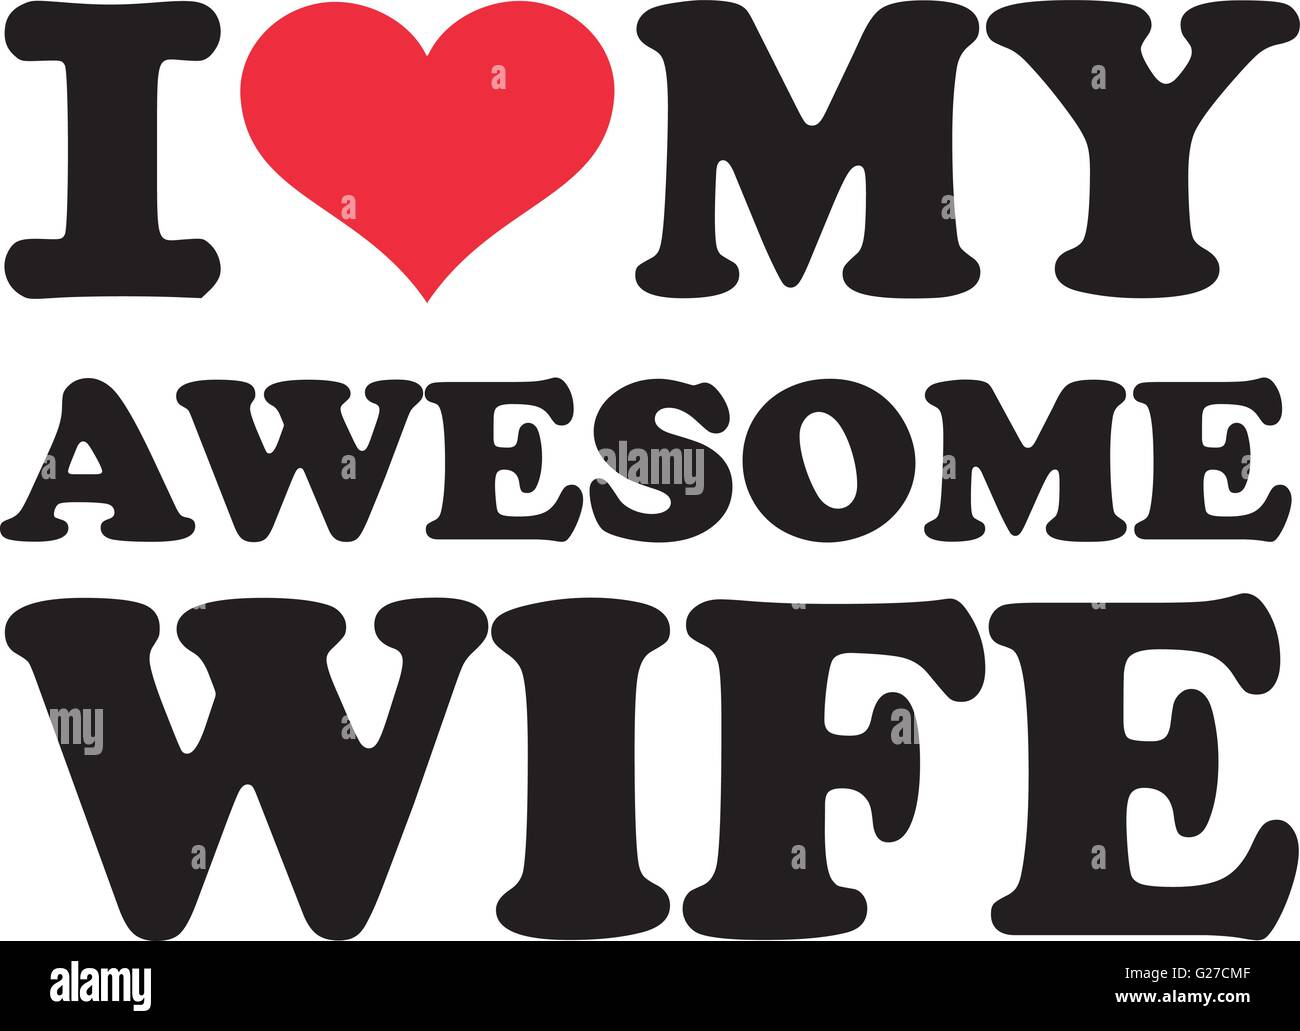 I Love My Awesome Wife Stock Vector Art Illustration Vector Image